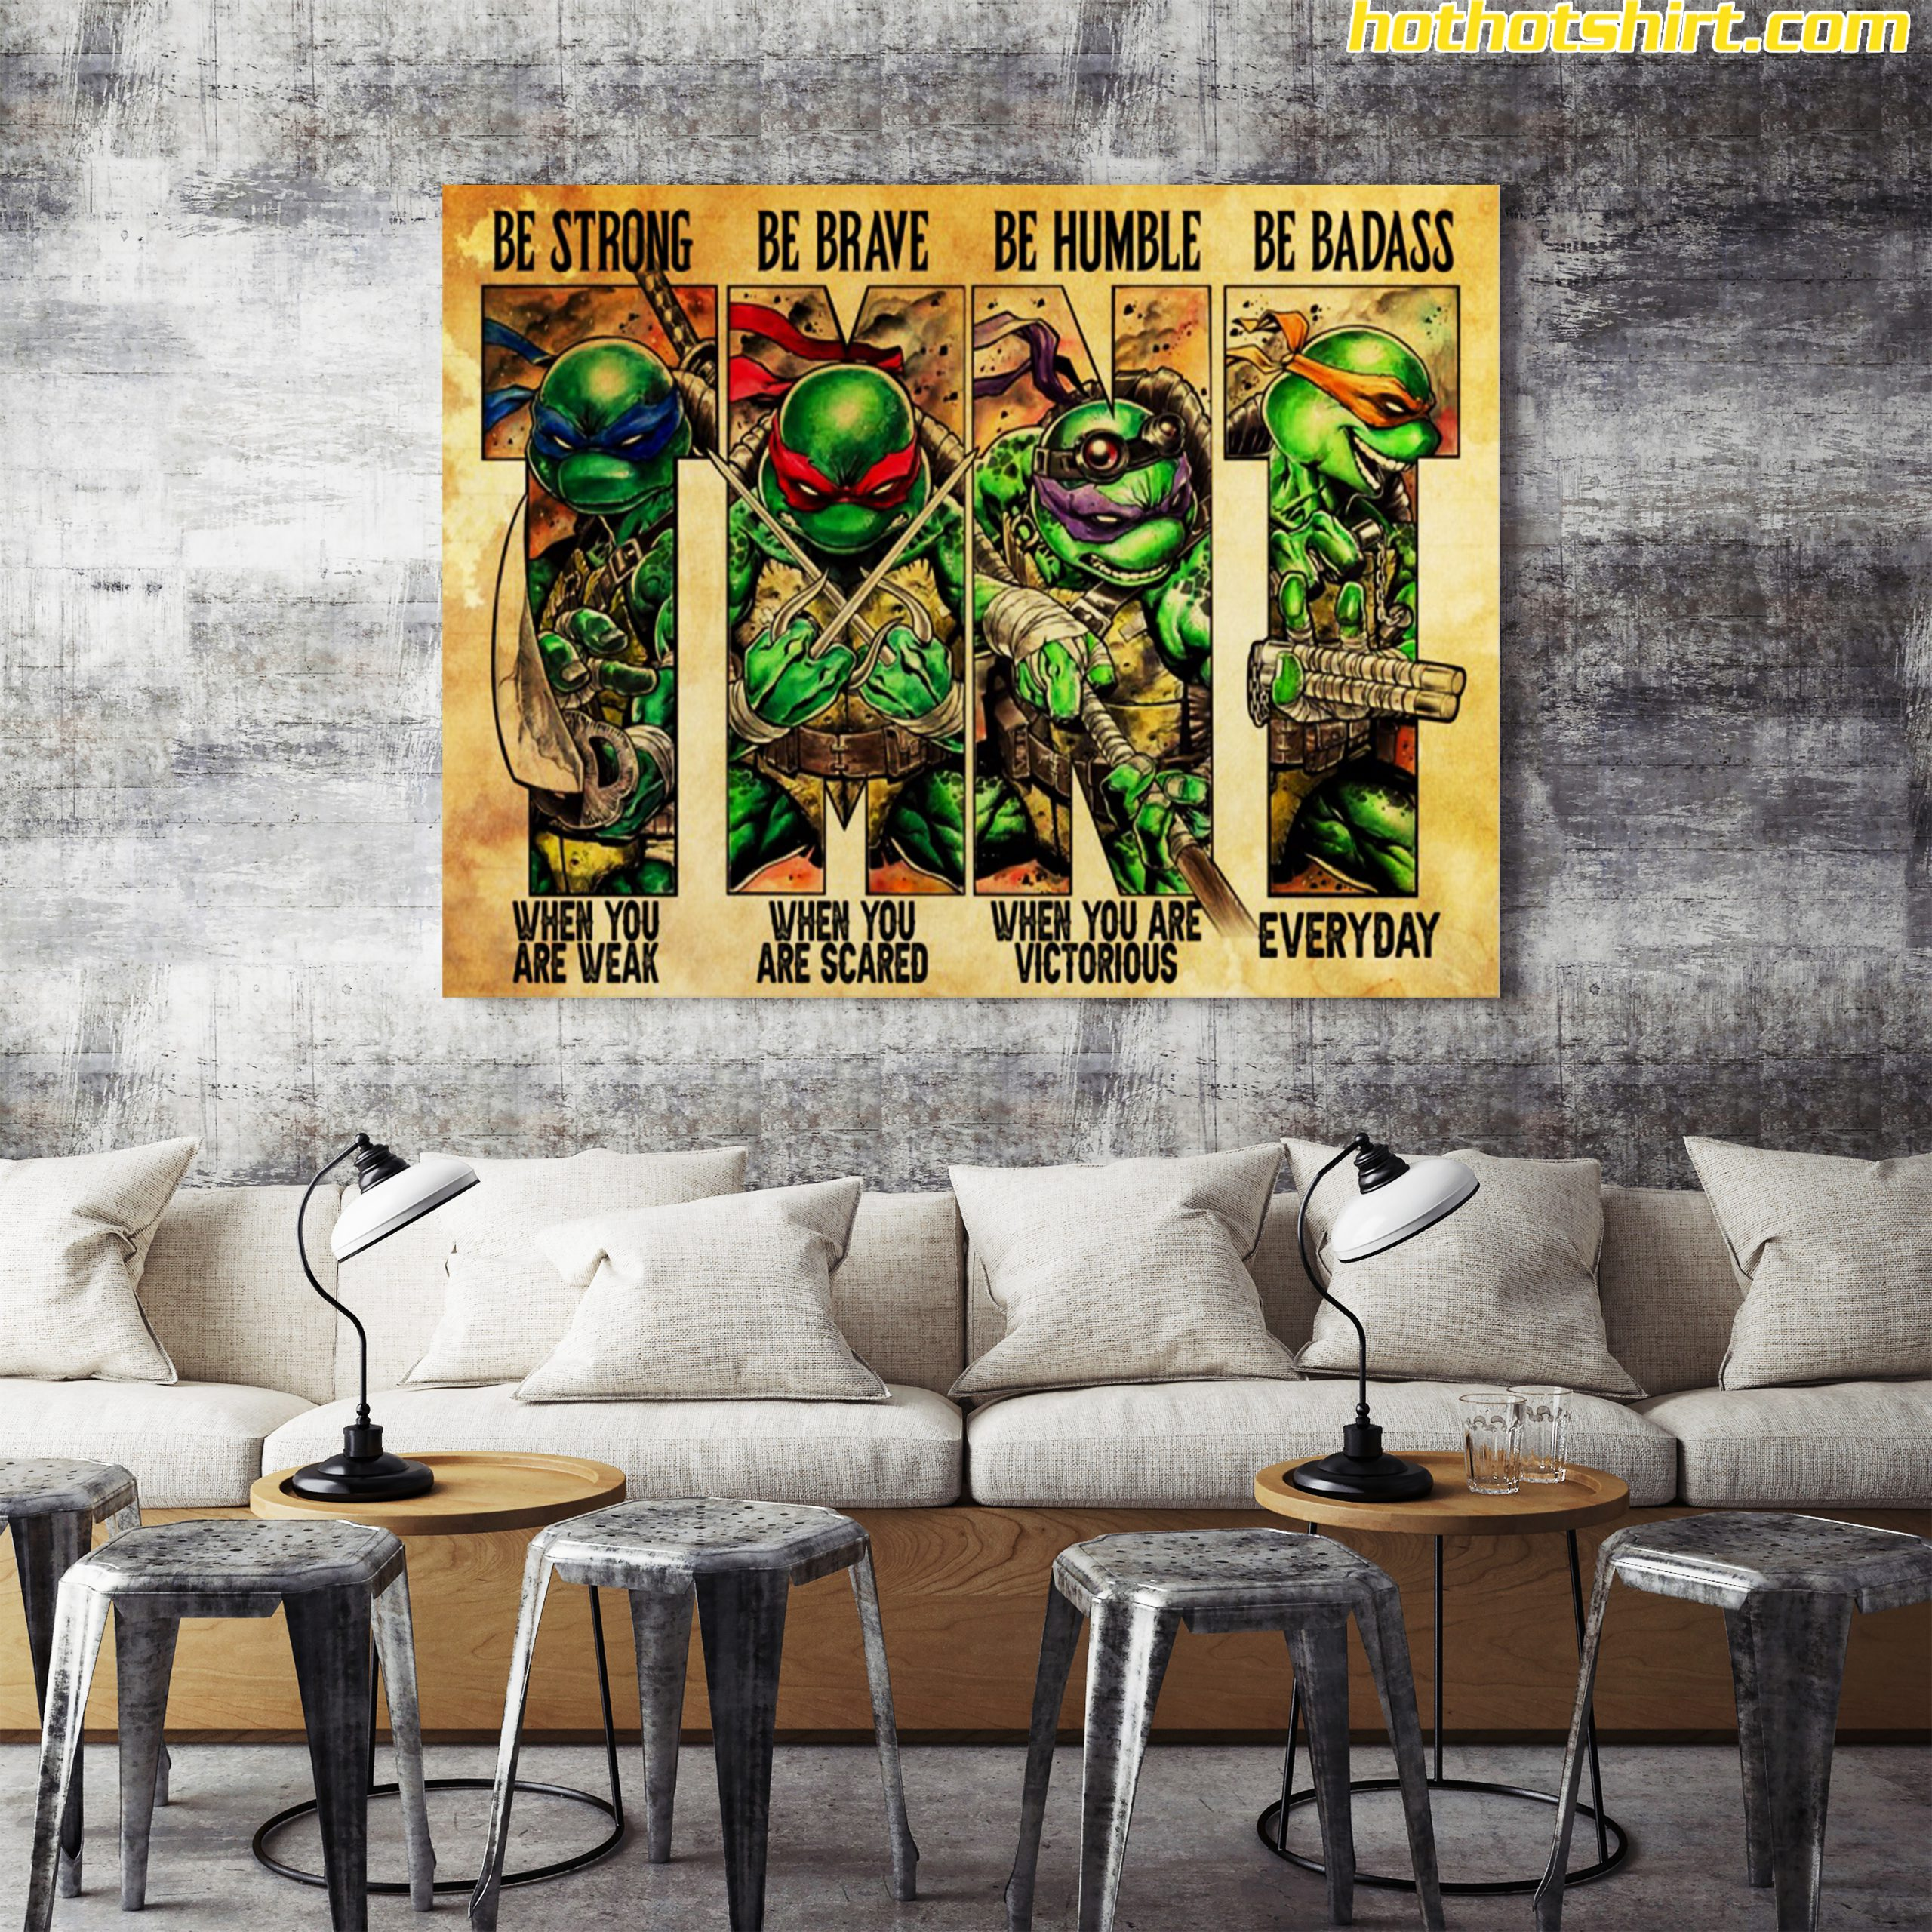 TMNT be strong be brave be humble be badass poster